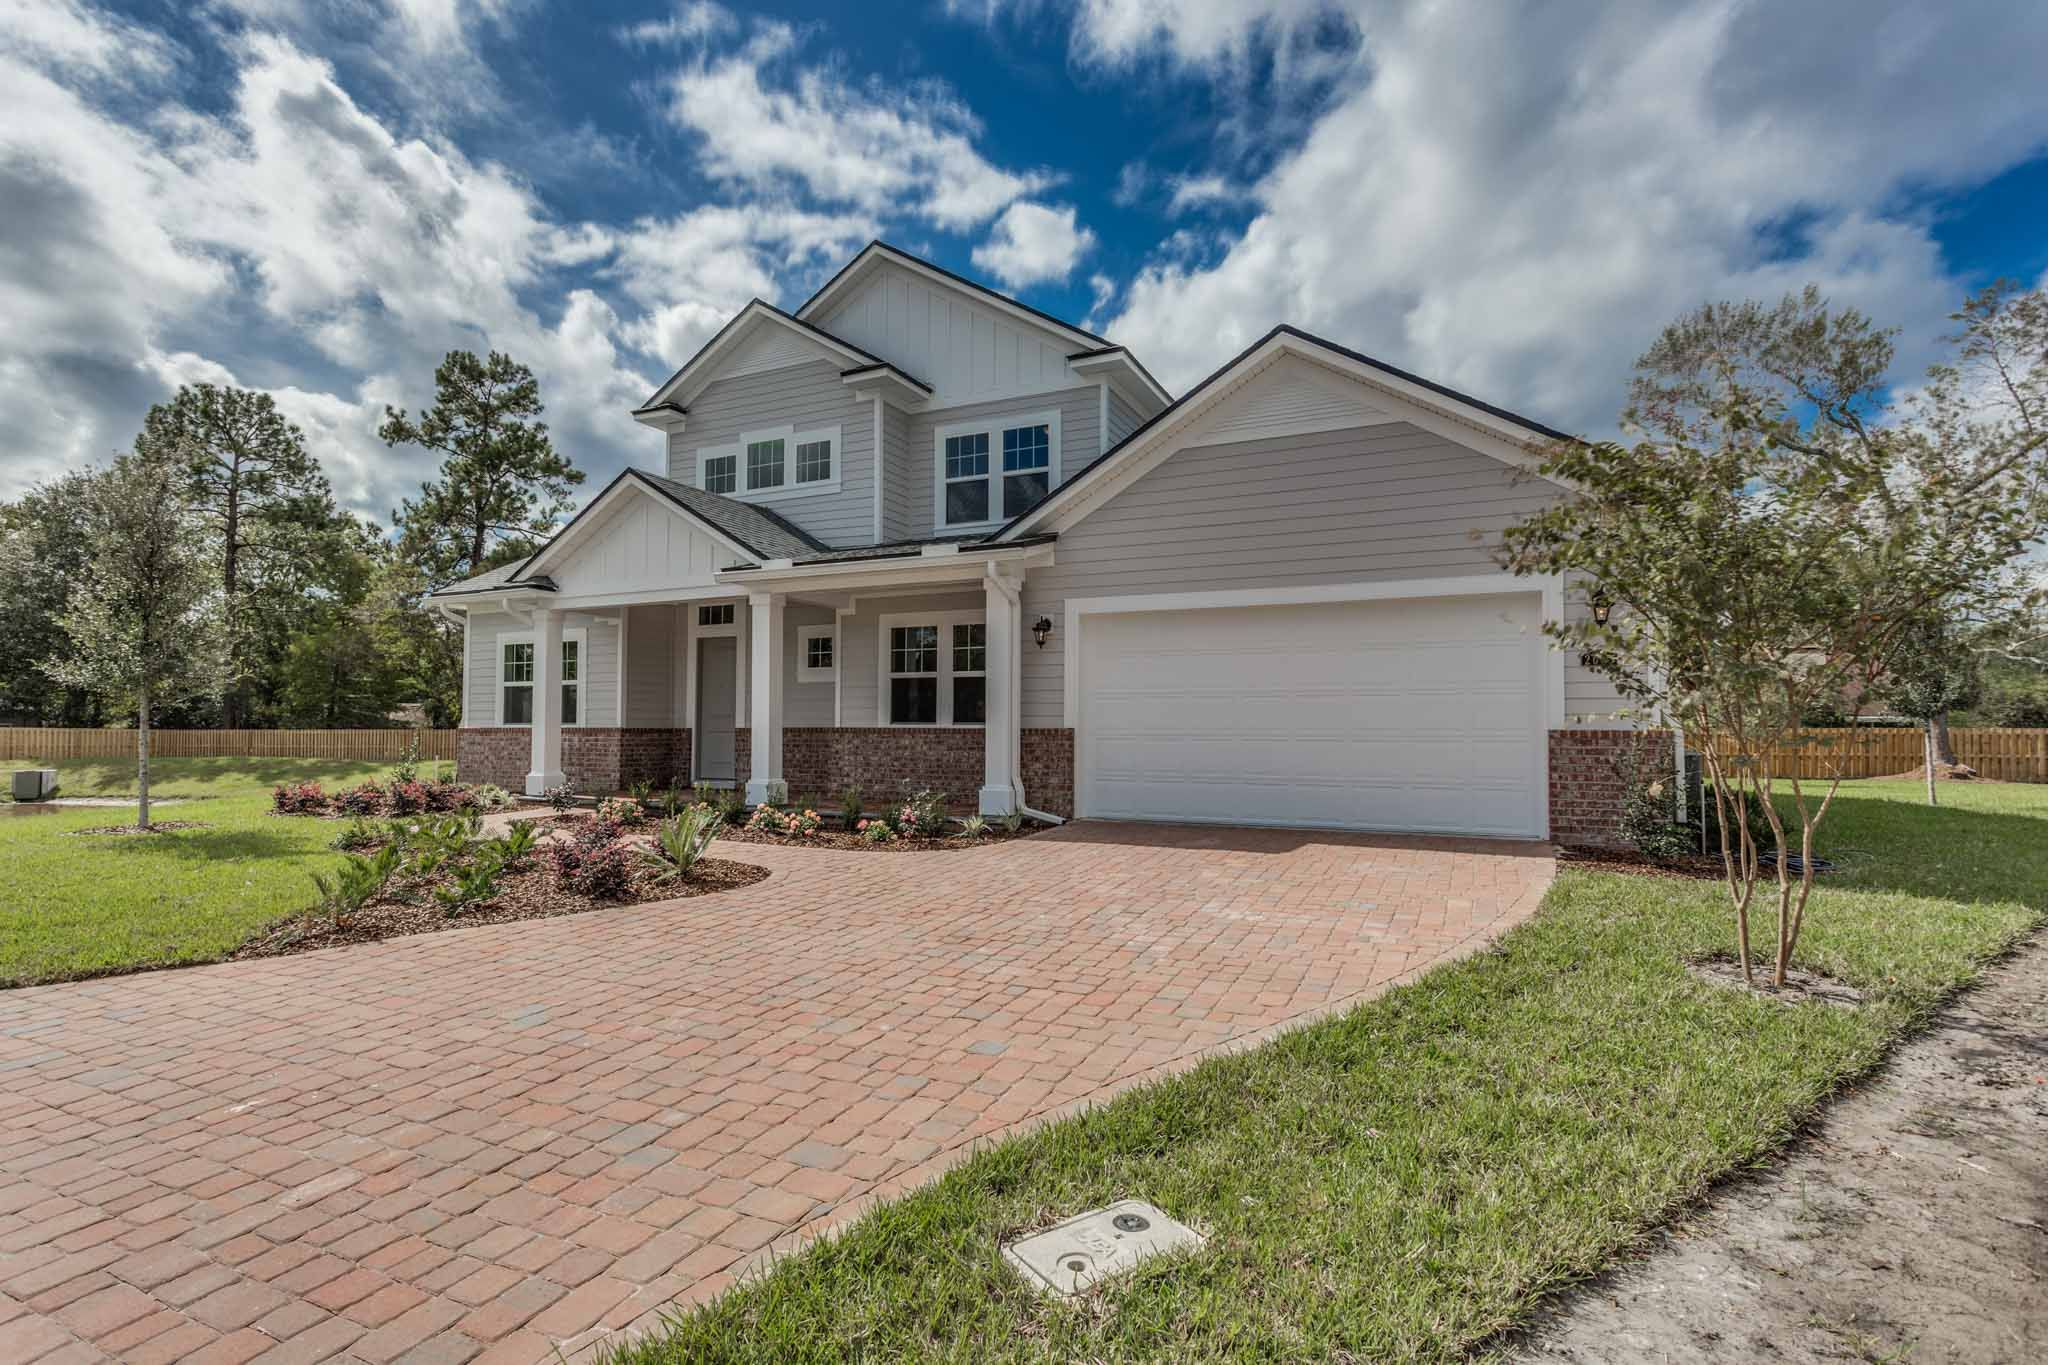 Sissy 39 s place new homes in jacksonville fl by tidewater for Tidewater homes llc